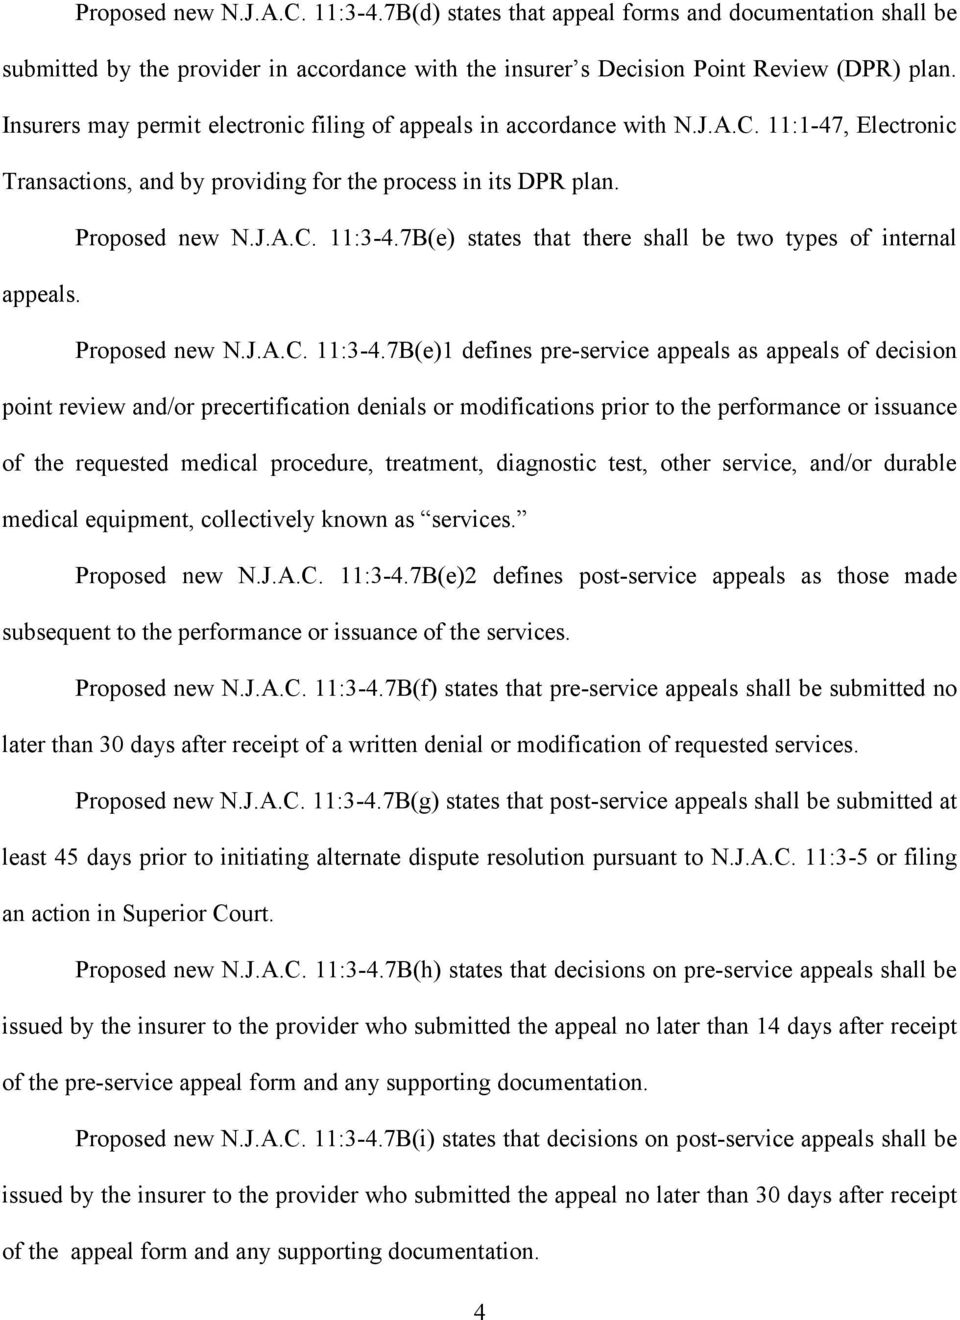 7B(e) states that there shall be two types of internal appeals. Proposed new N.J.A.C. 11:3-4.